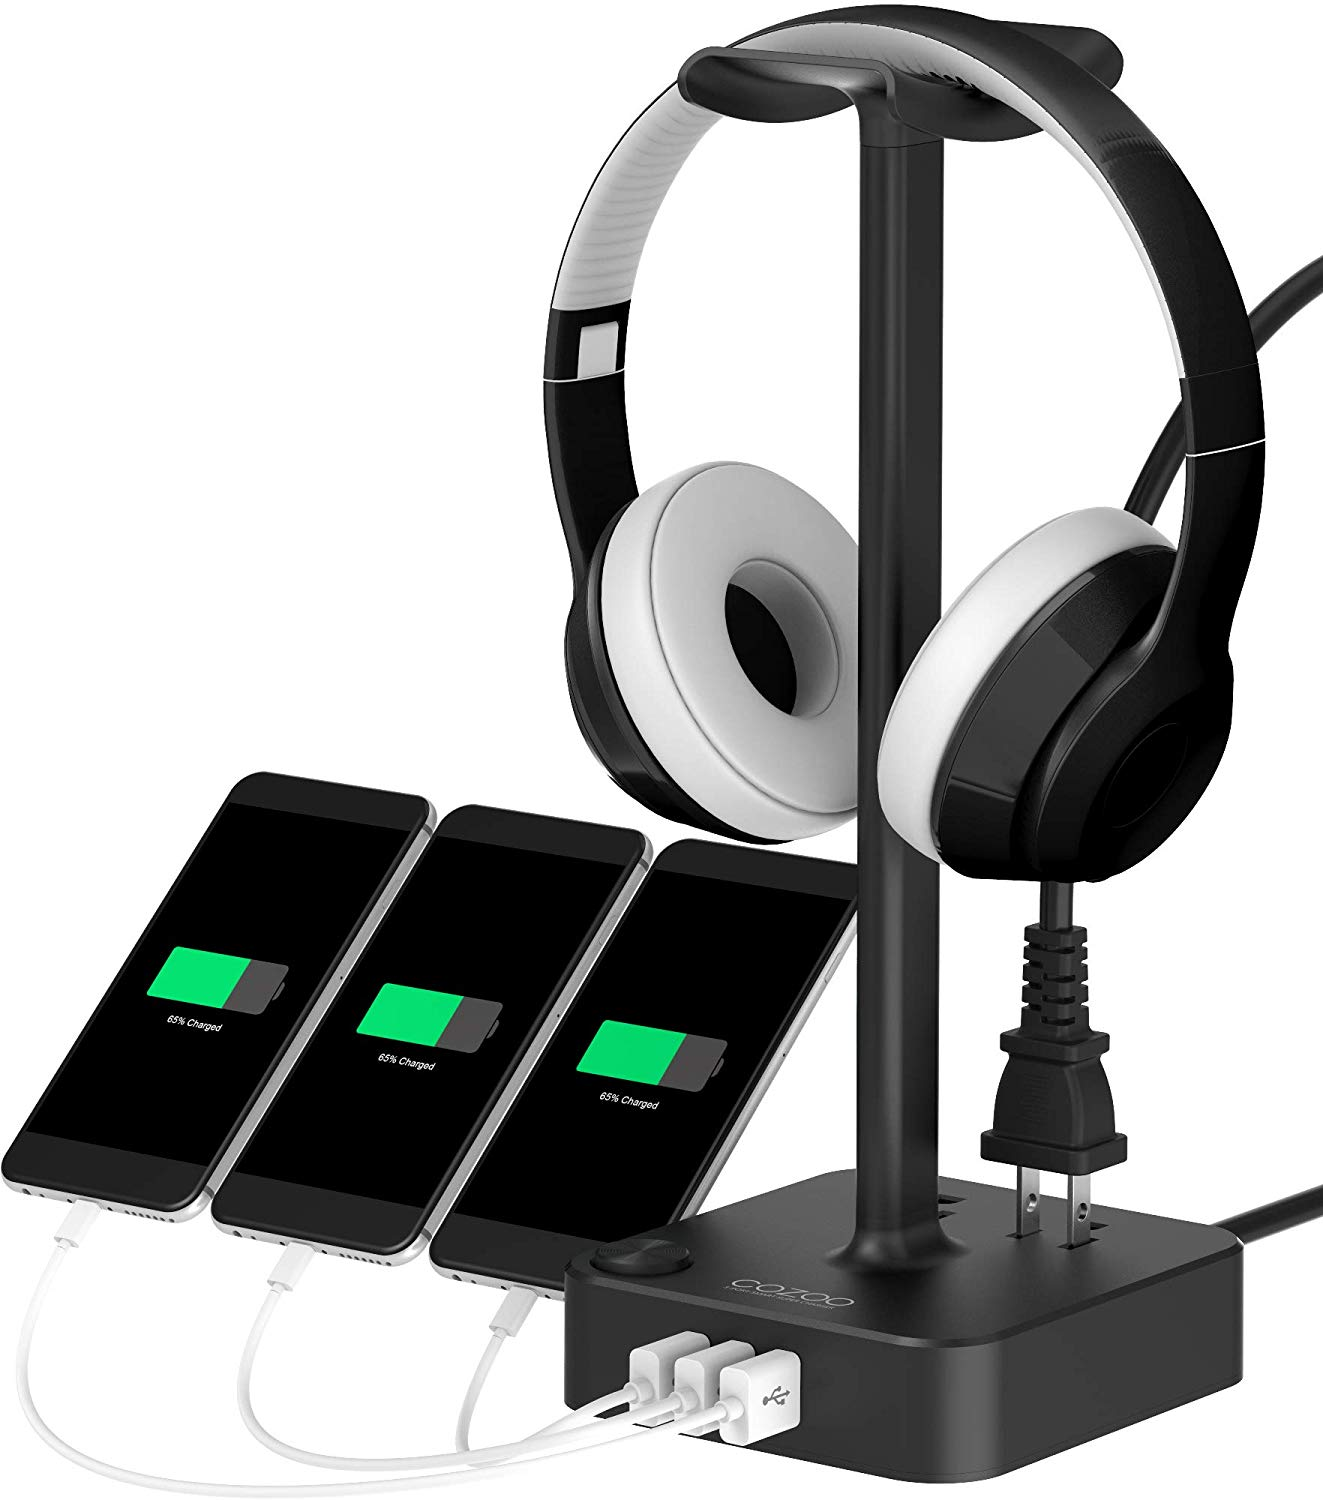 COZOO Desktop Gaming Headset Holder